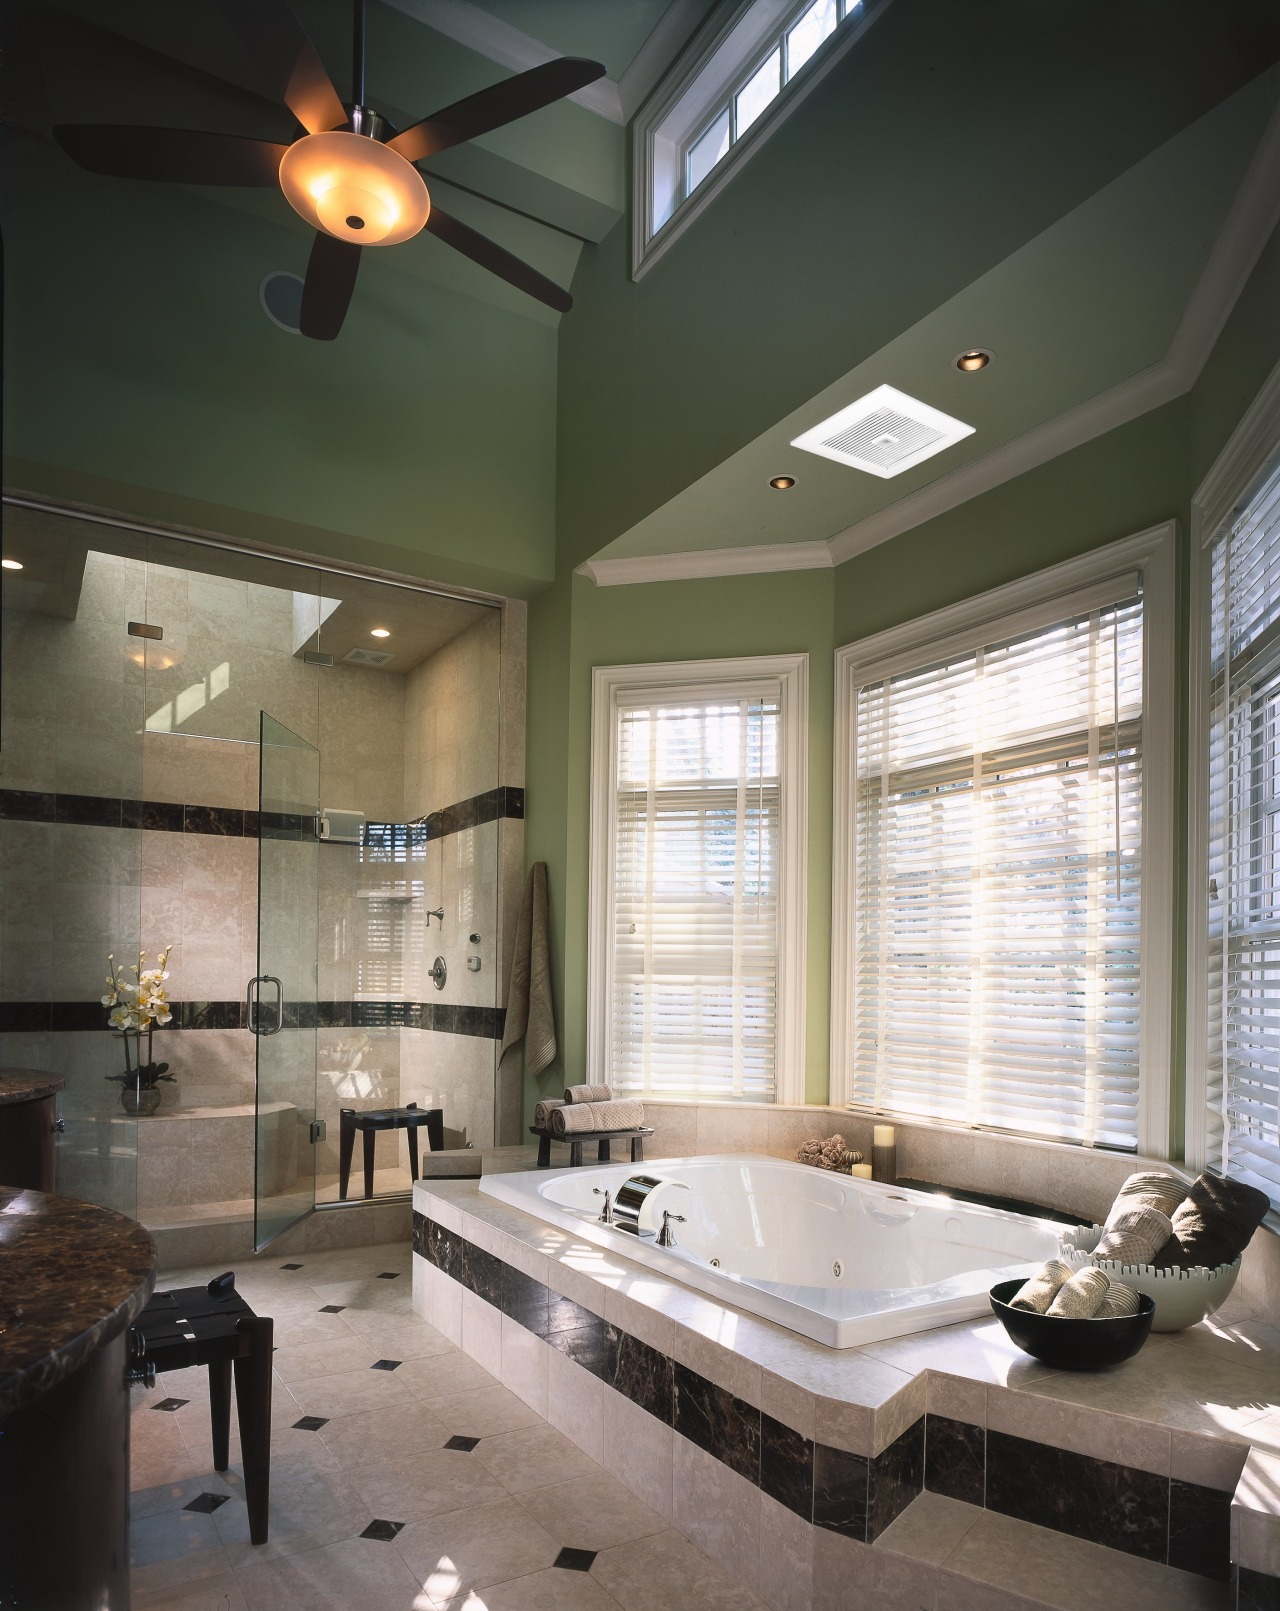 A Panasonic WhisperGreen ventilation fan on the ceiling bathroom, ceiling, daylighting, floor, home, interior design, lighting, room, window, gray, black